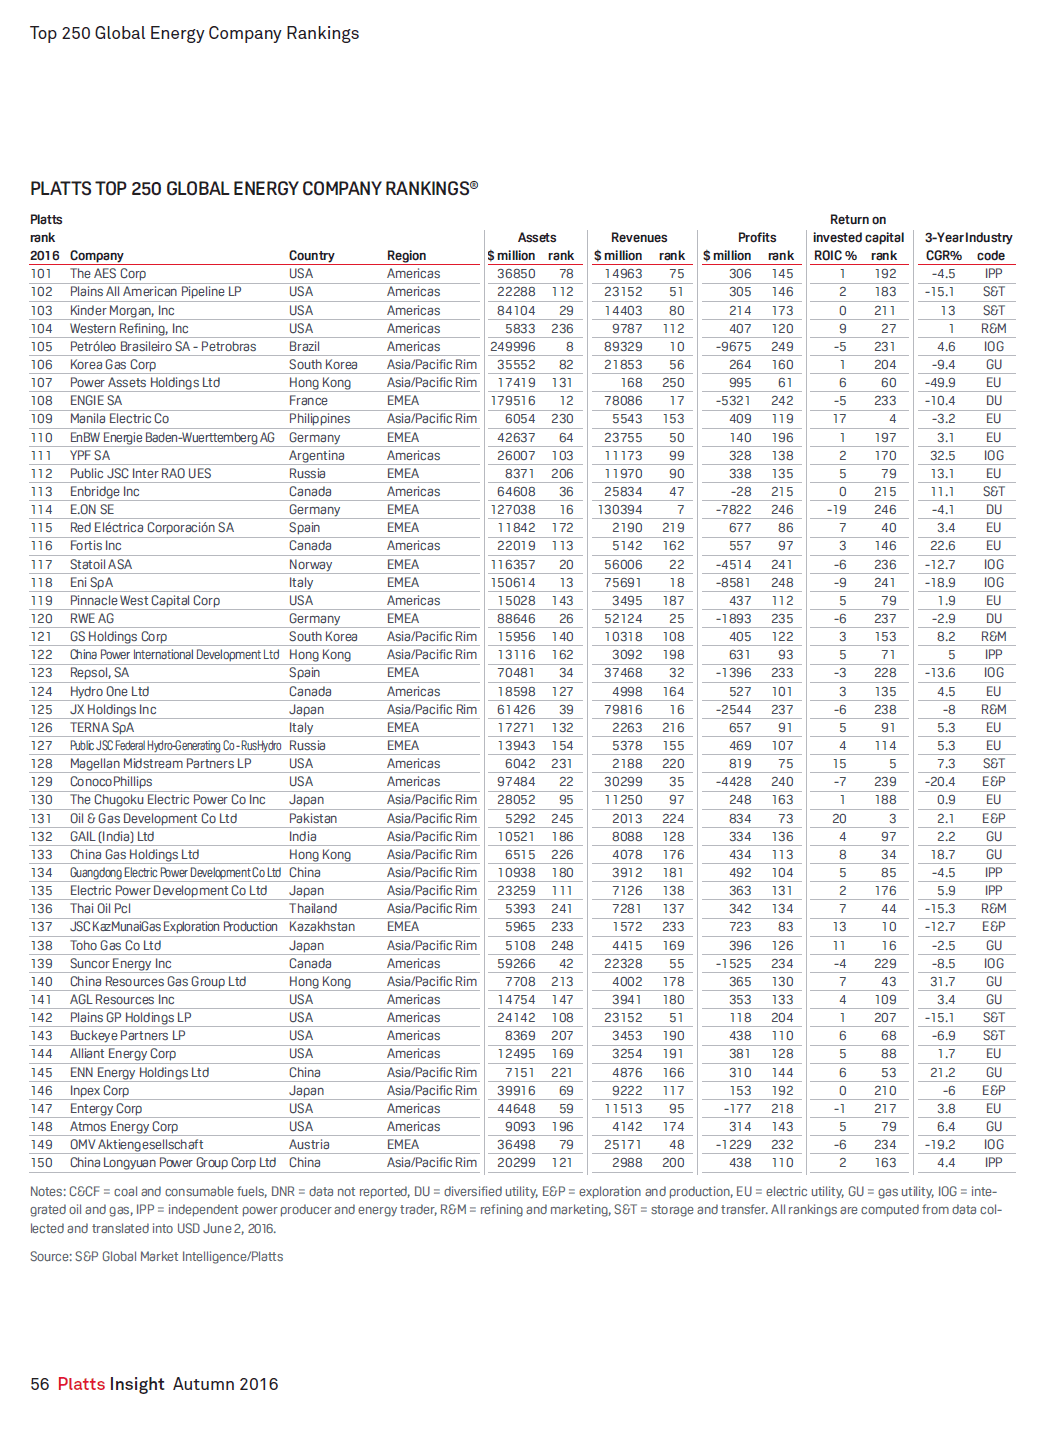 platts-top-250-energy-firms-2016-page-3